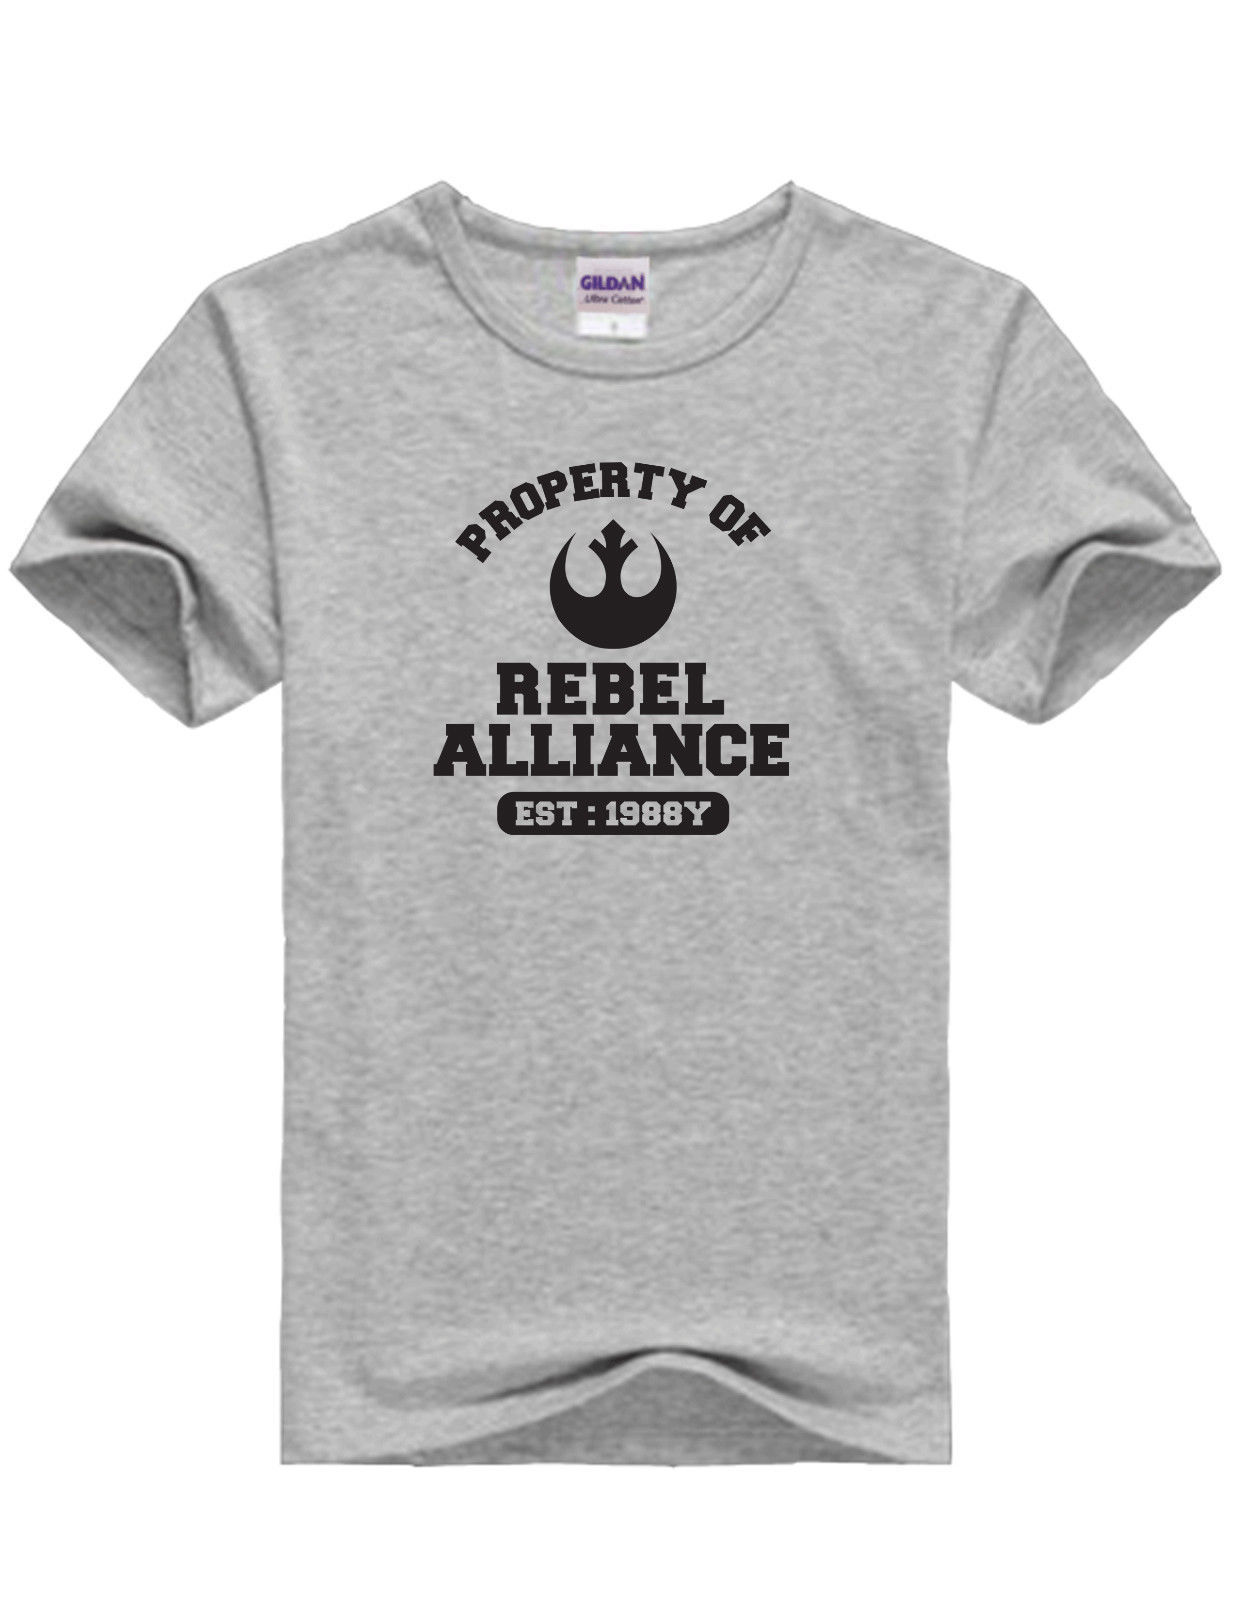 Inspired Star Wars Movie Property of Rebel Alliance Unisex Grey amp Black TShirts Free shipping Harajuku Tops Fashion Classic in T Shirts from Men 39 s Clothing